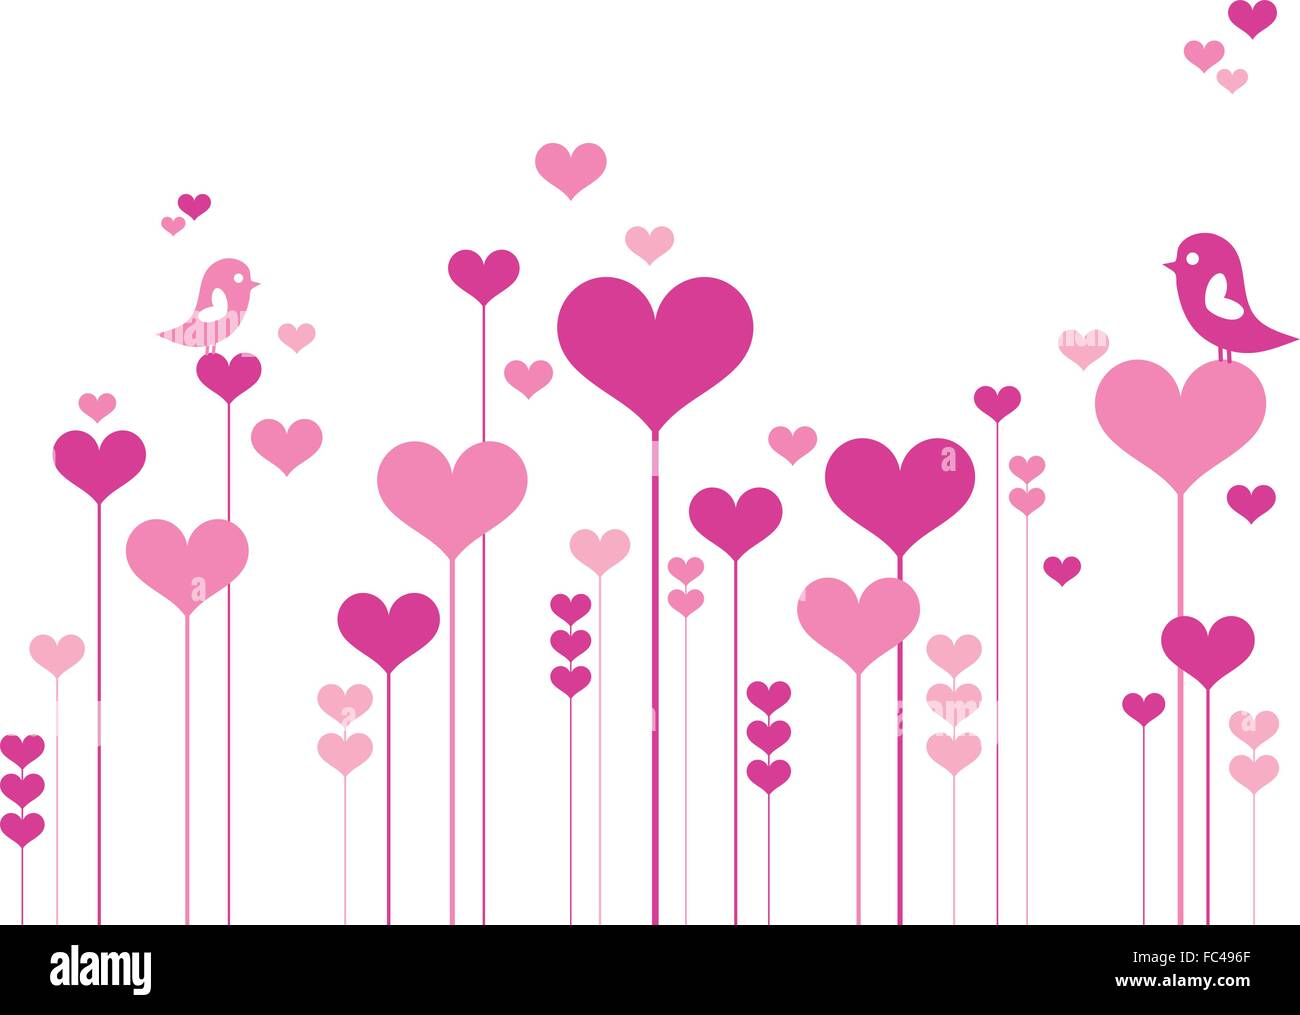 pink heart flowers with love birds, vector illustration - Stock Image